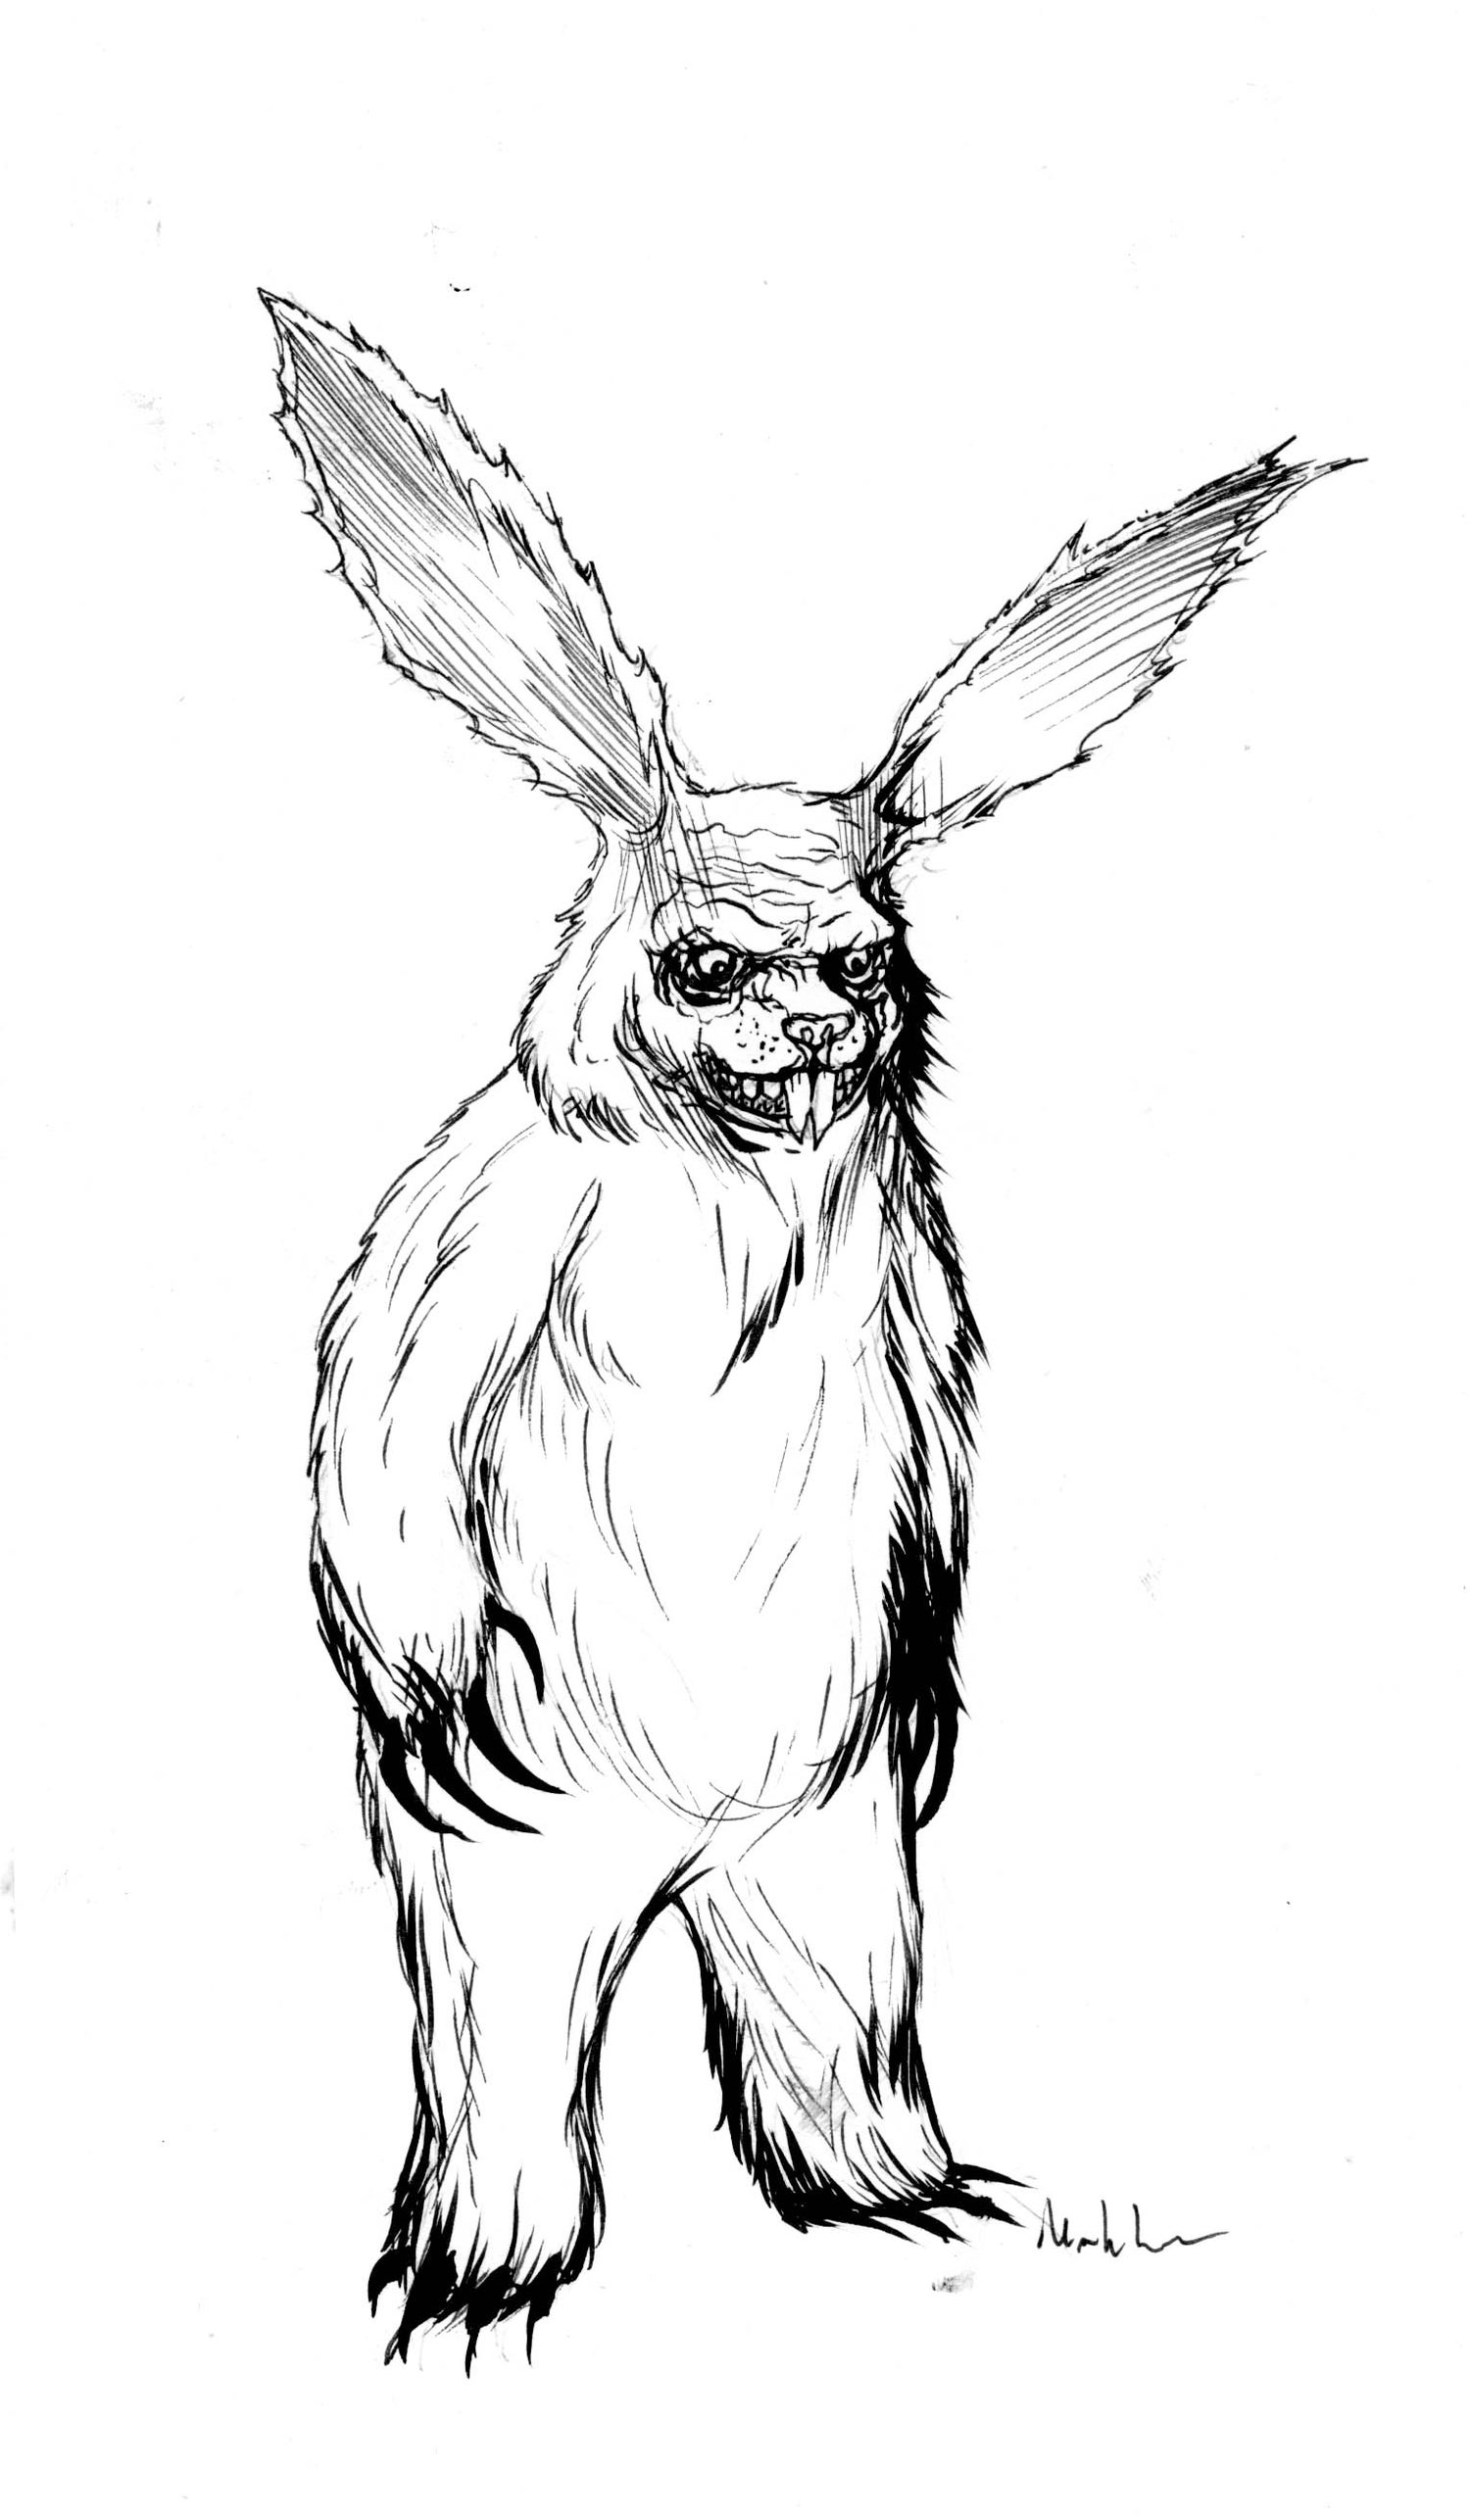 Image of Evil Easter Bunny from bogus journey